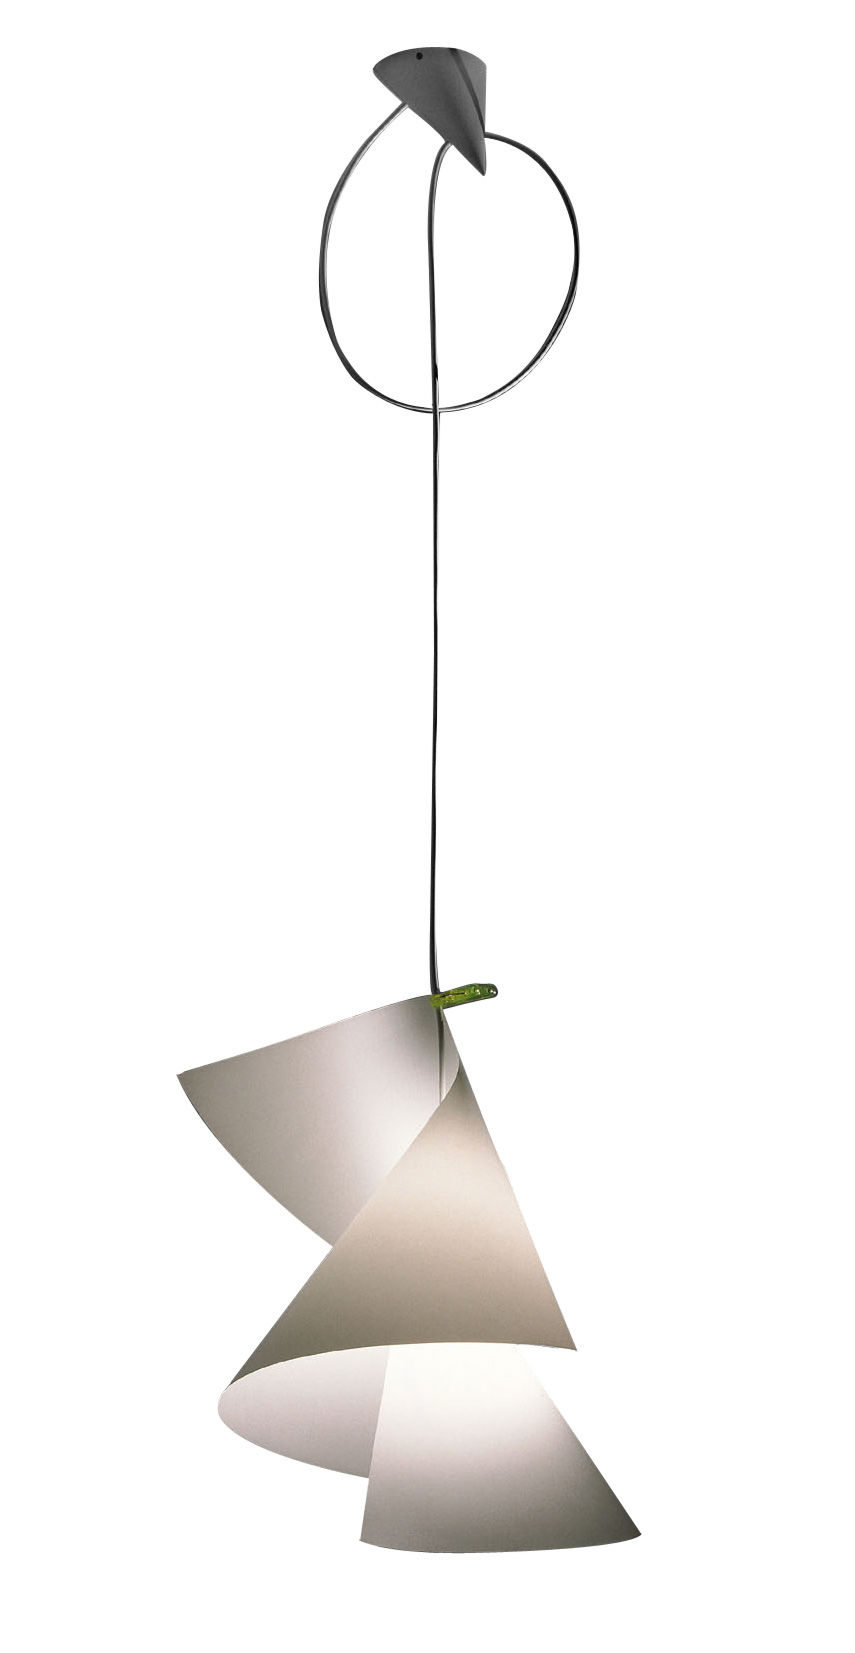 Lighting - Pendant Lighting - WillyDilly Pendant by Ingo Maurer - Translucent white - Cardboard